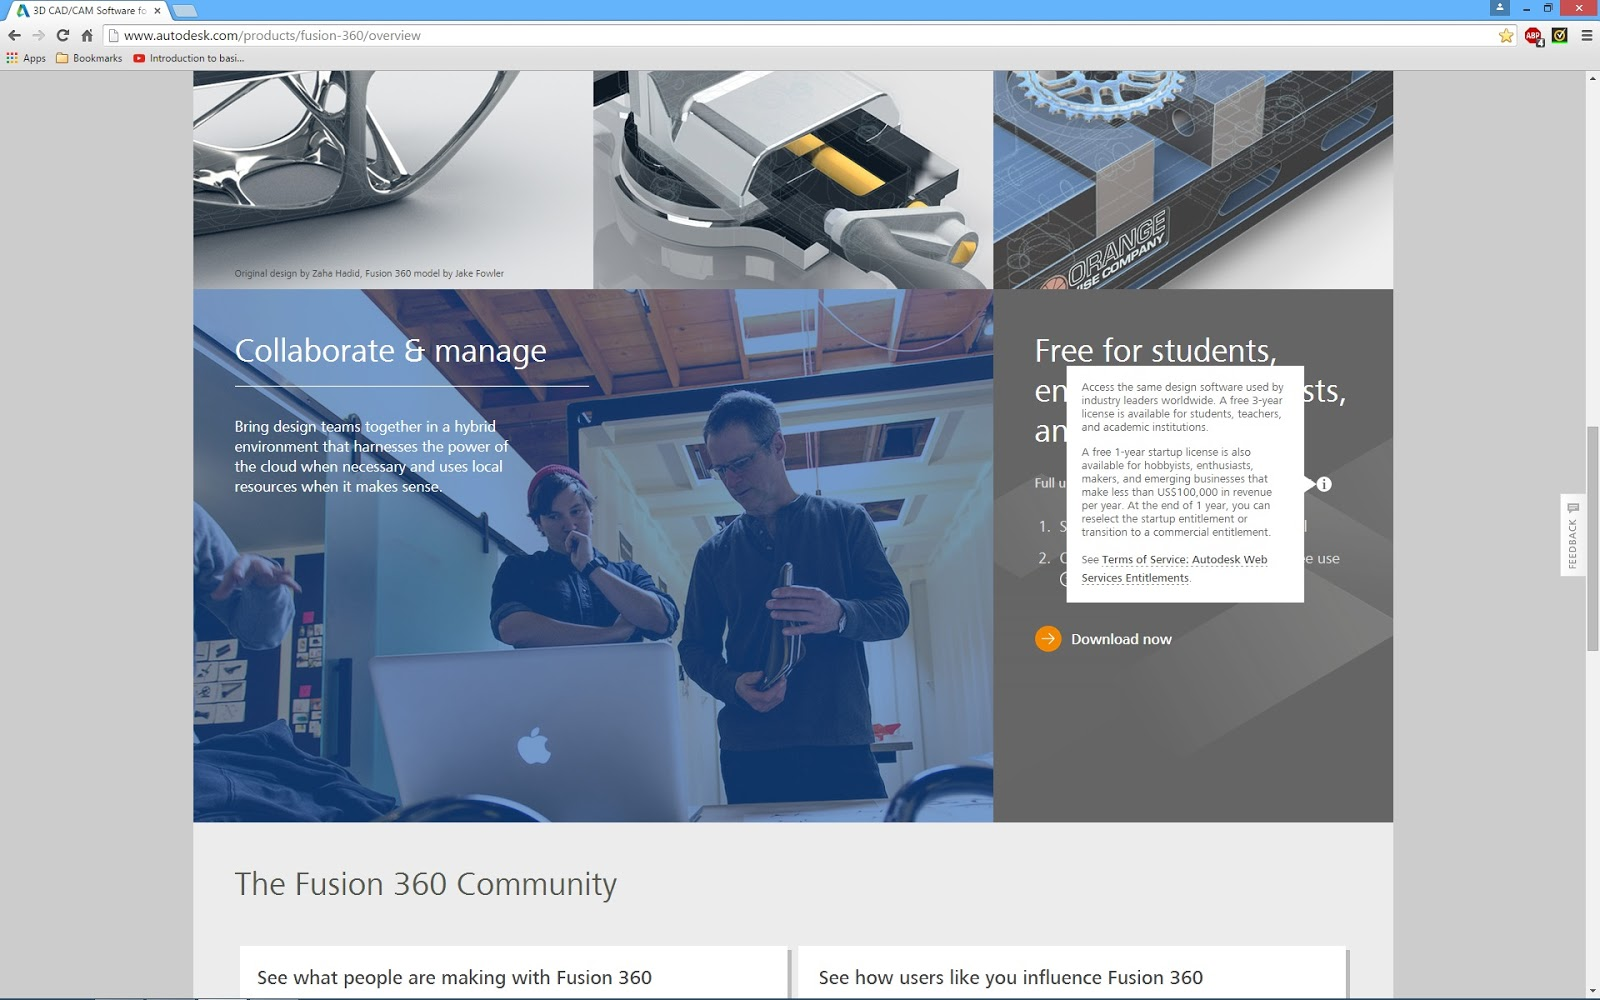 The Tinkers Workshop Free Fusion 360 Cad Design Software From Autodesk